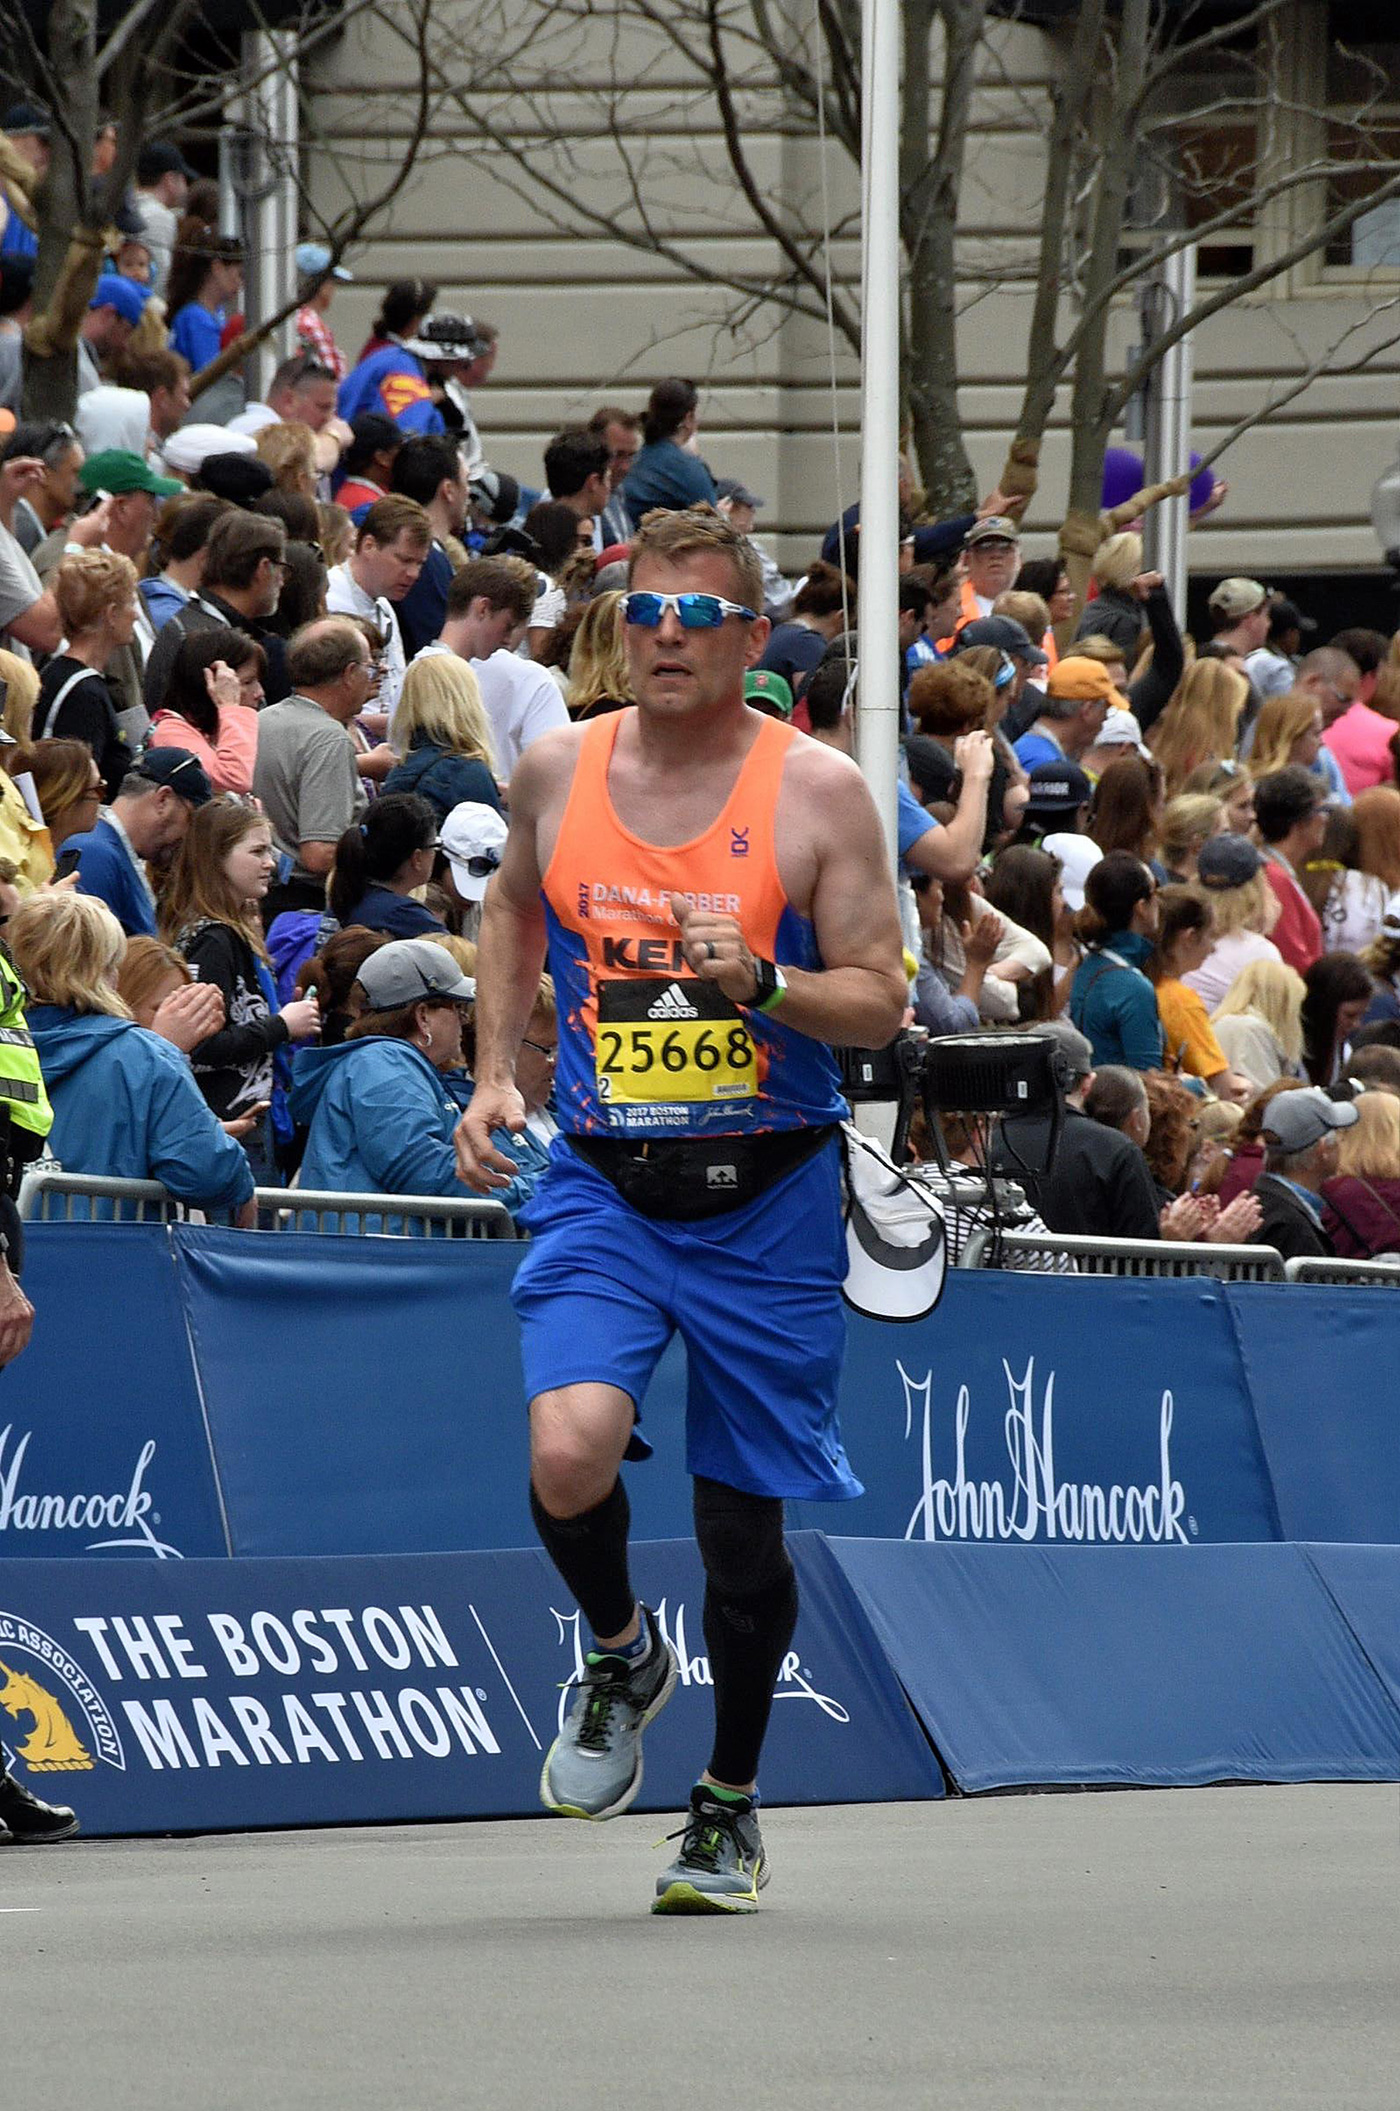 High-end builder running Boston Marathon